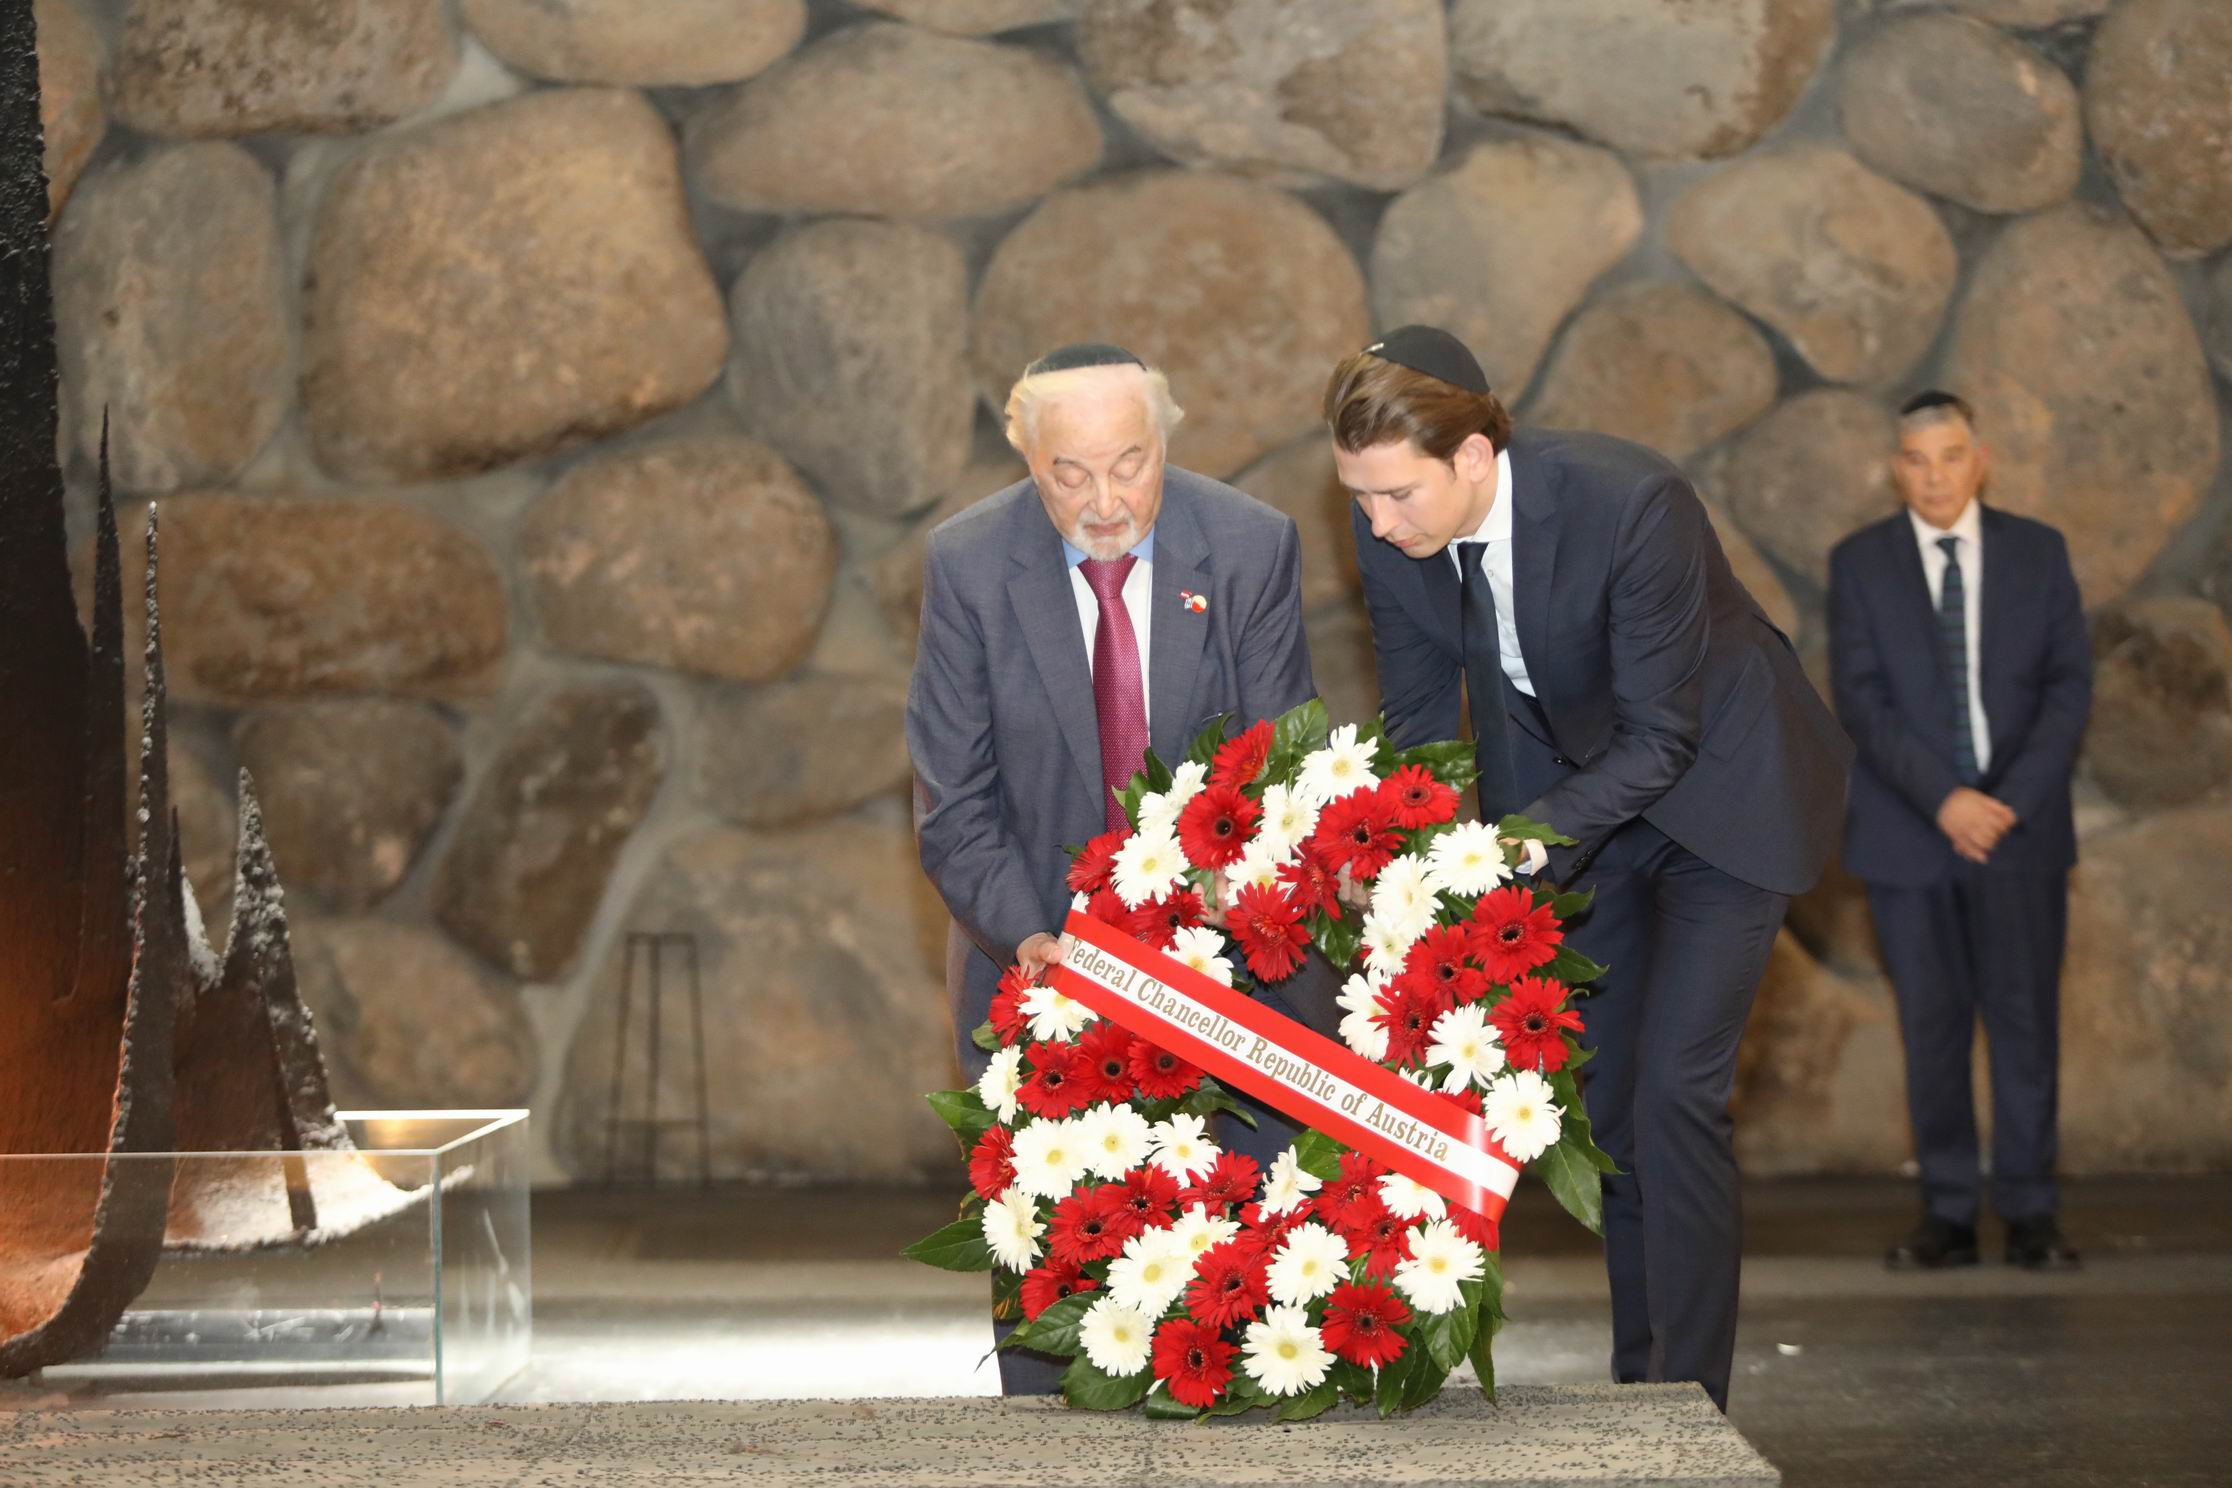 Chancellor Kurz and Holocaust survivor Viktor Klein lay a wreath in the Hall of Remembrance on behalf of the Austrian people